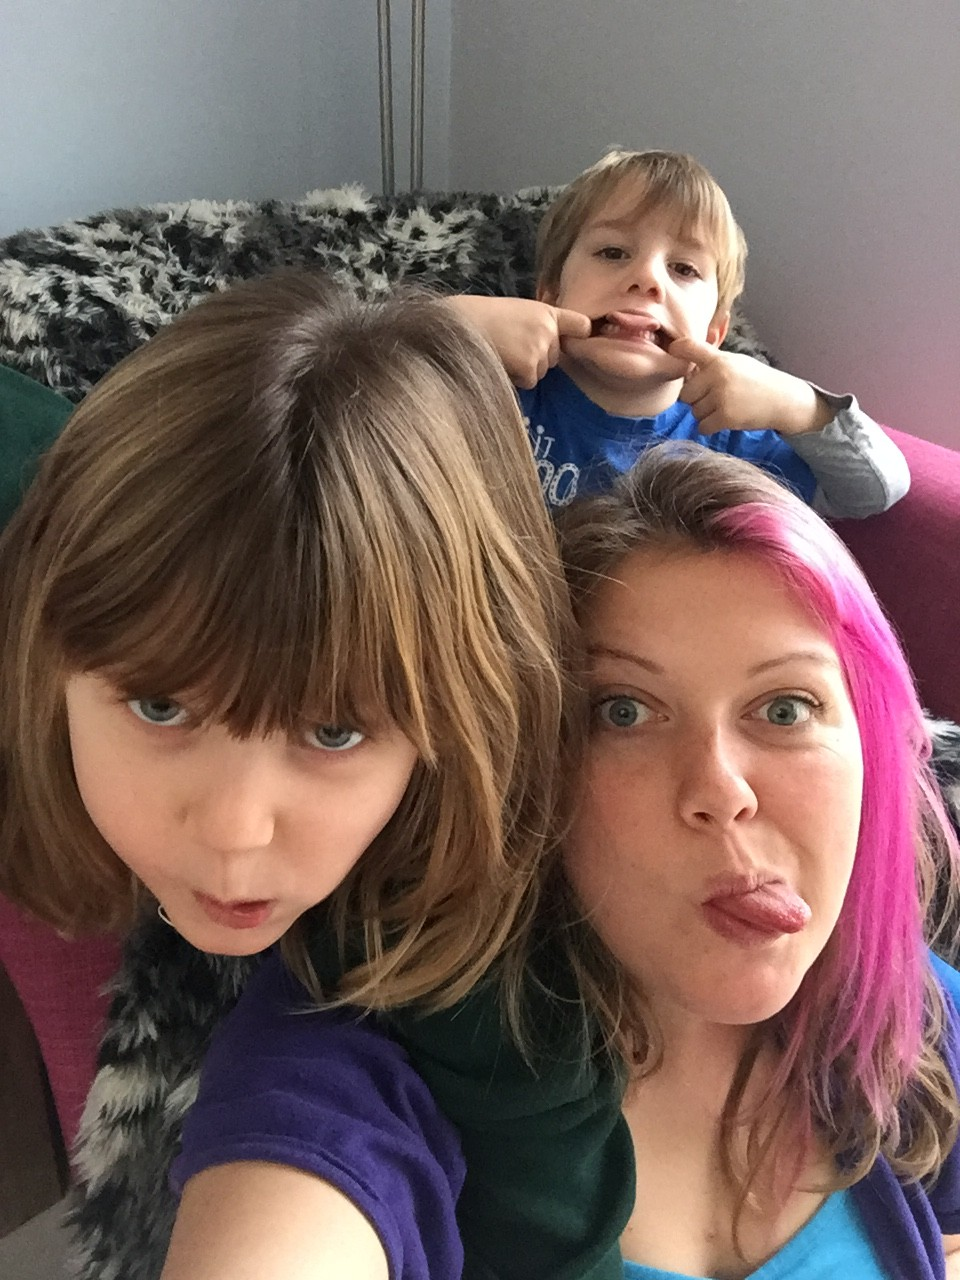 Working from home with children. Alternate title – How to ruin a perfectly good day.